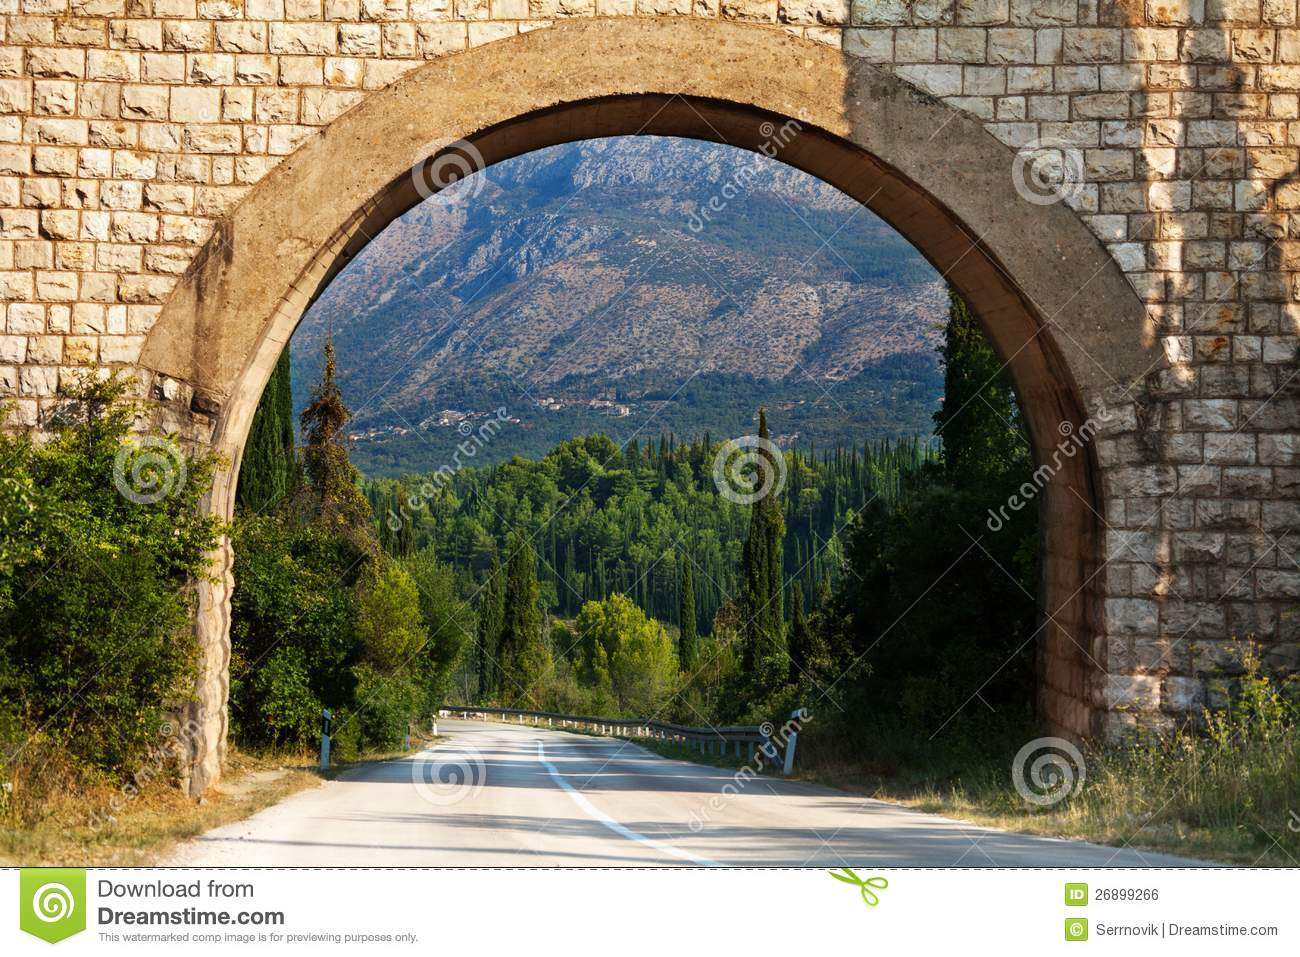 Scenic arch in Croatia